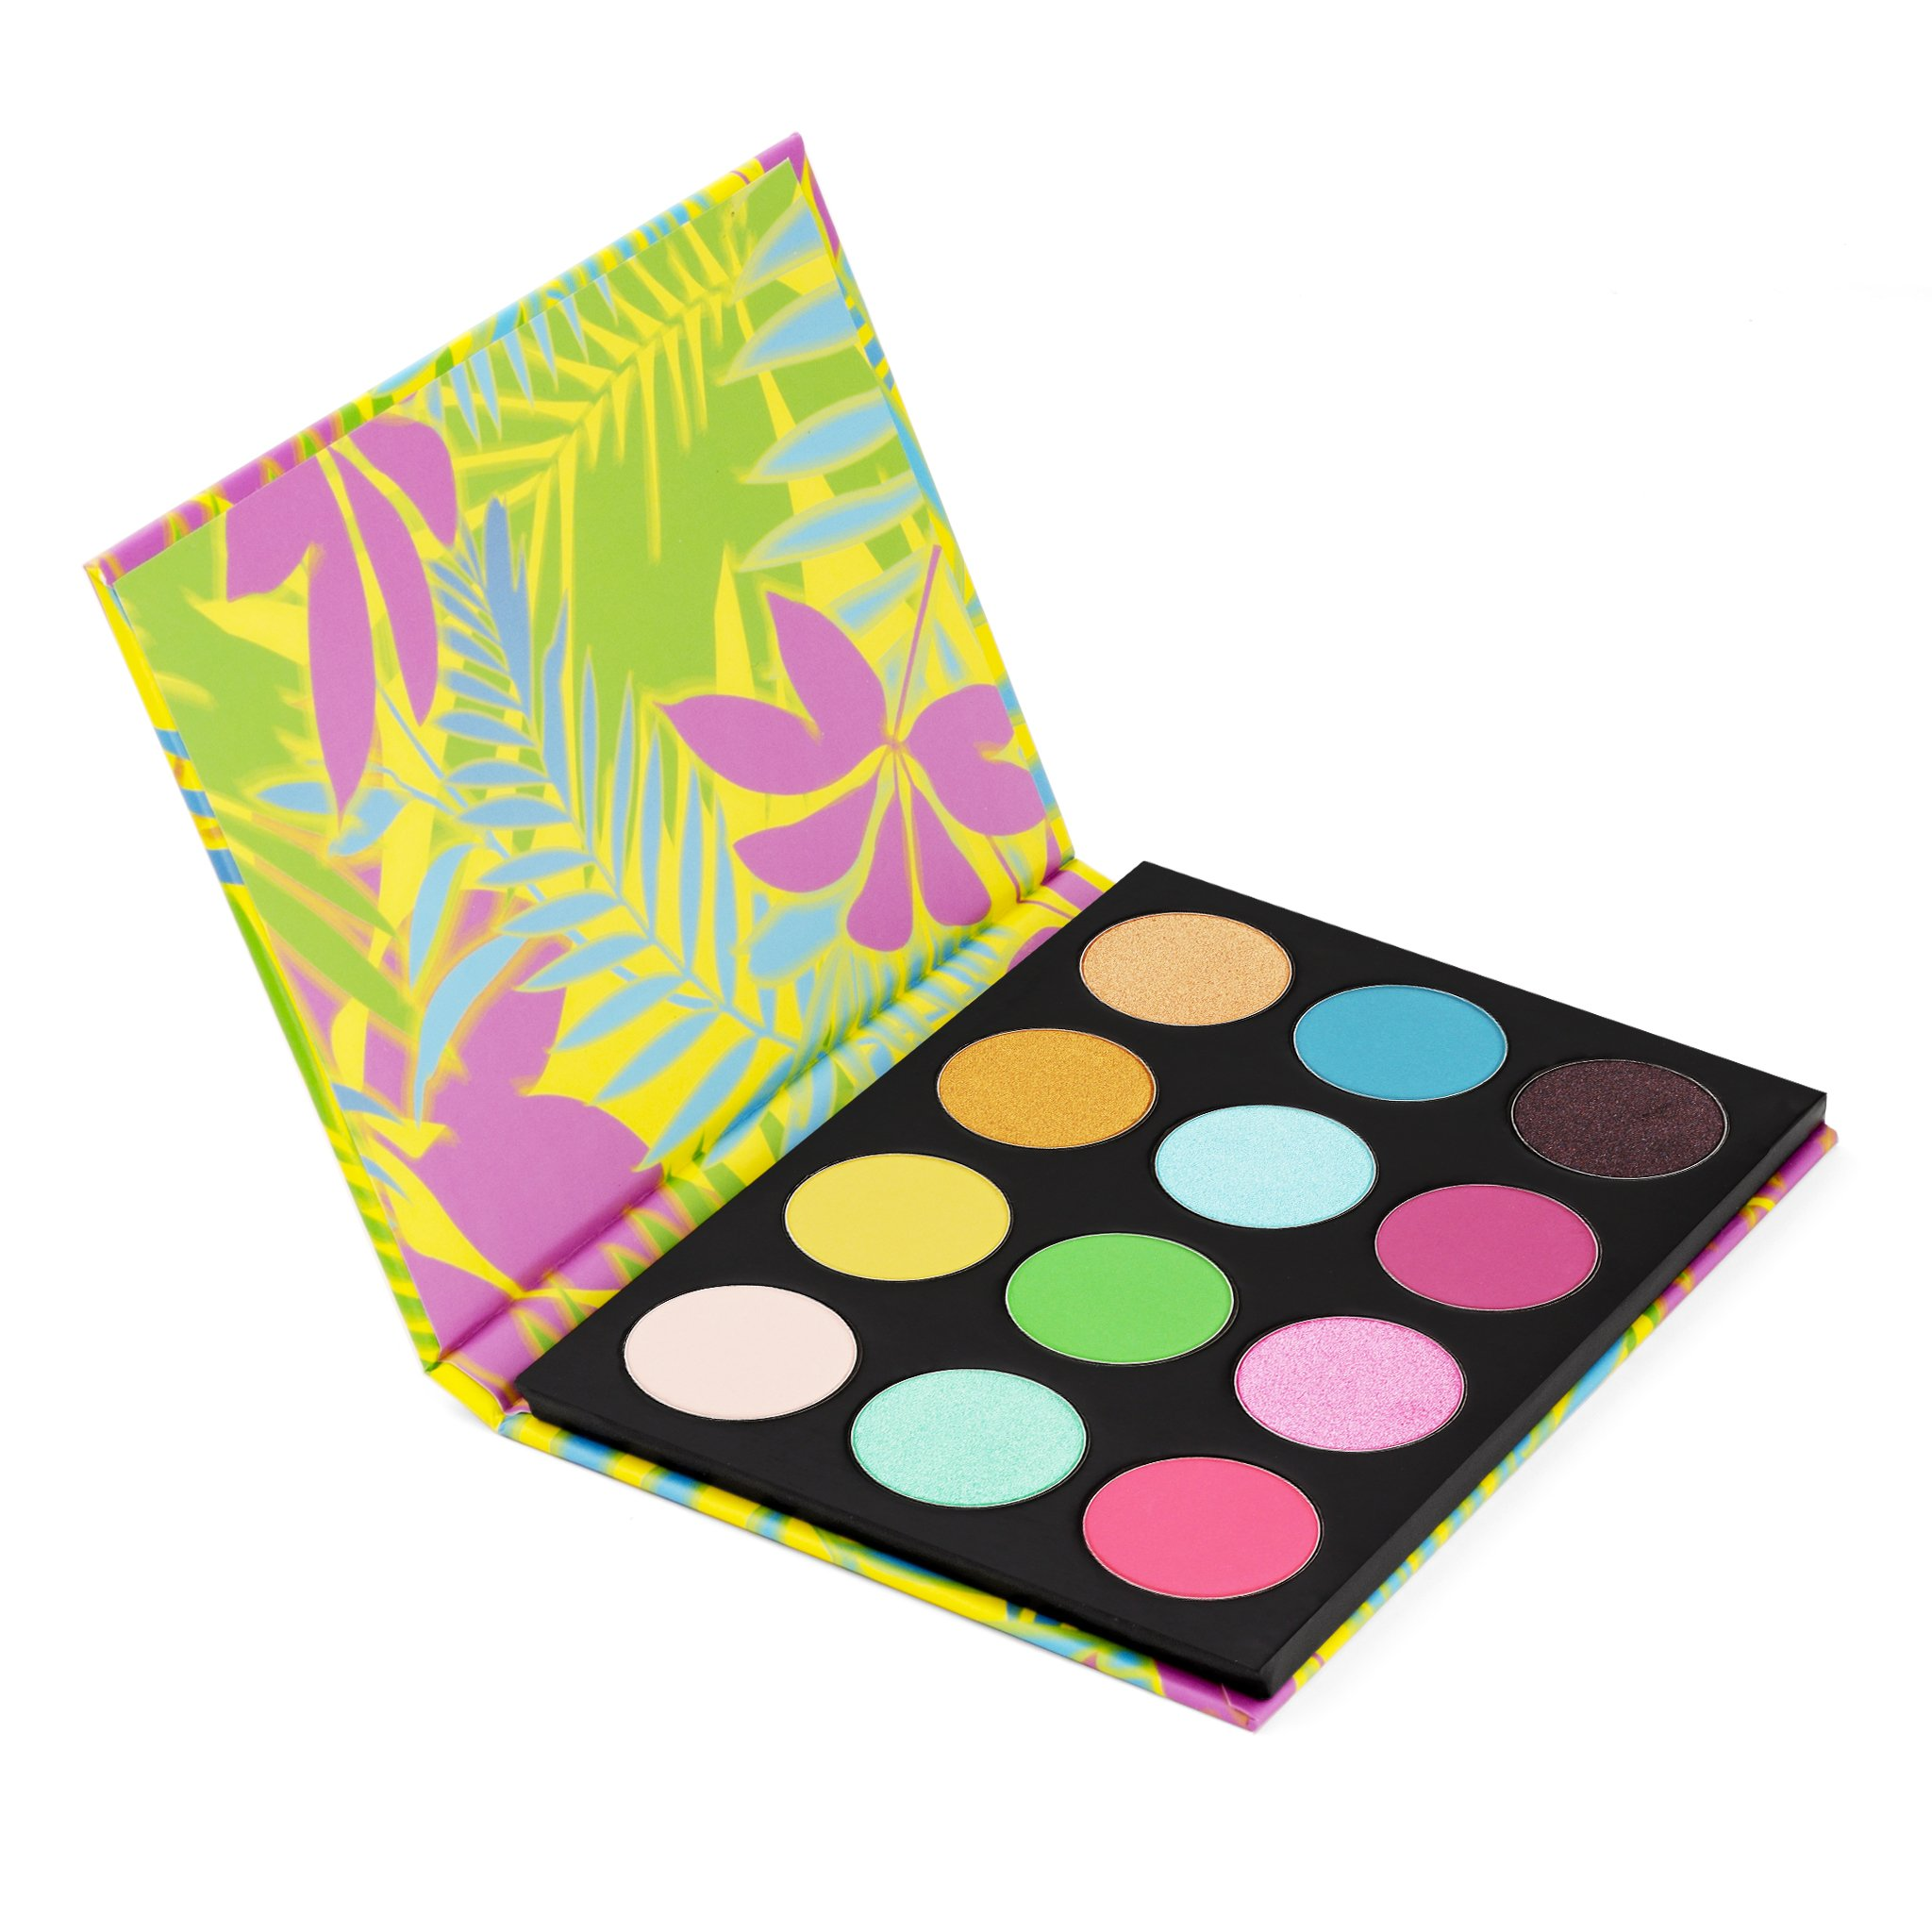 Summer Breeze Palette Image